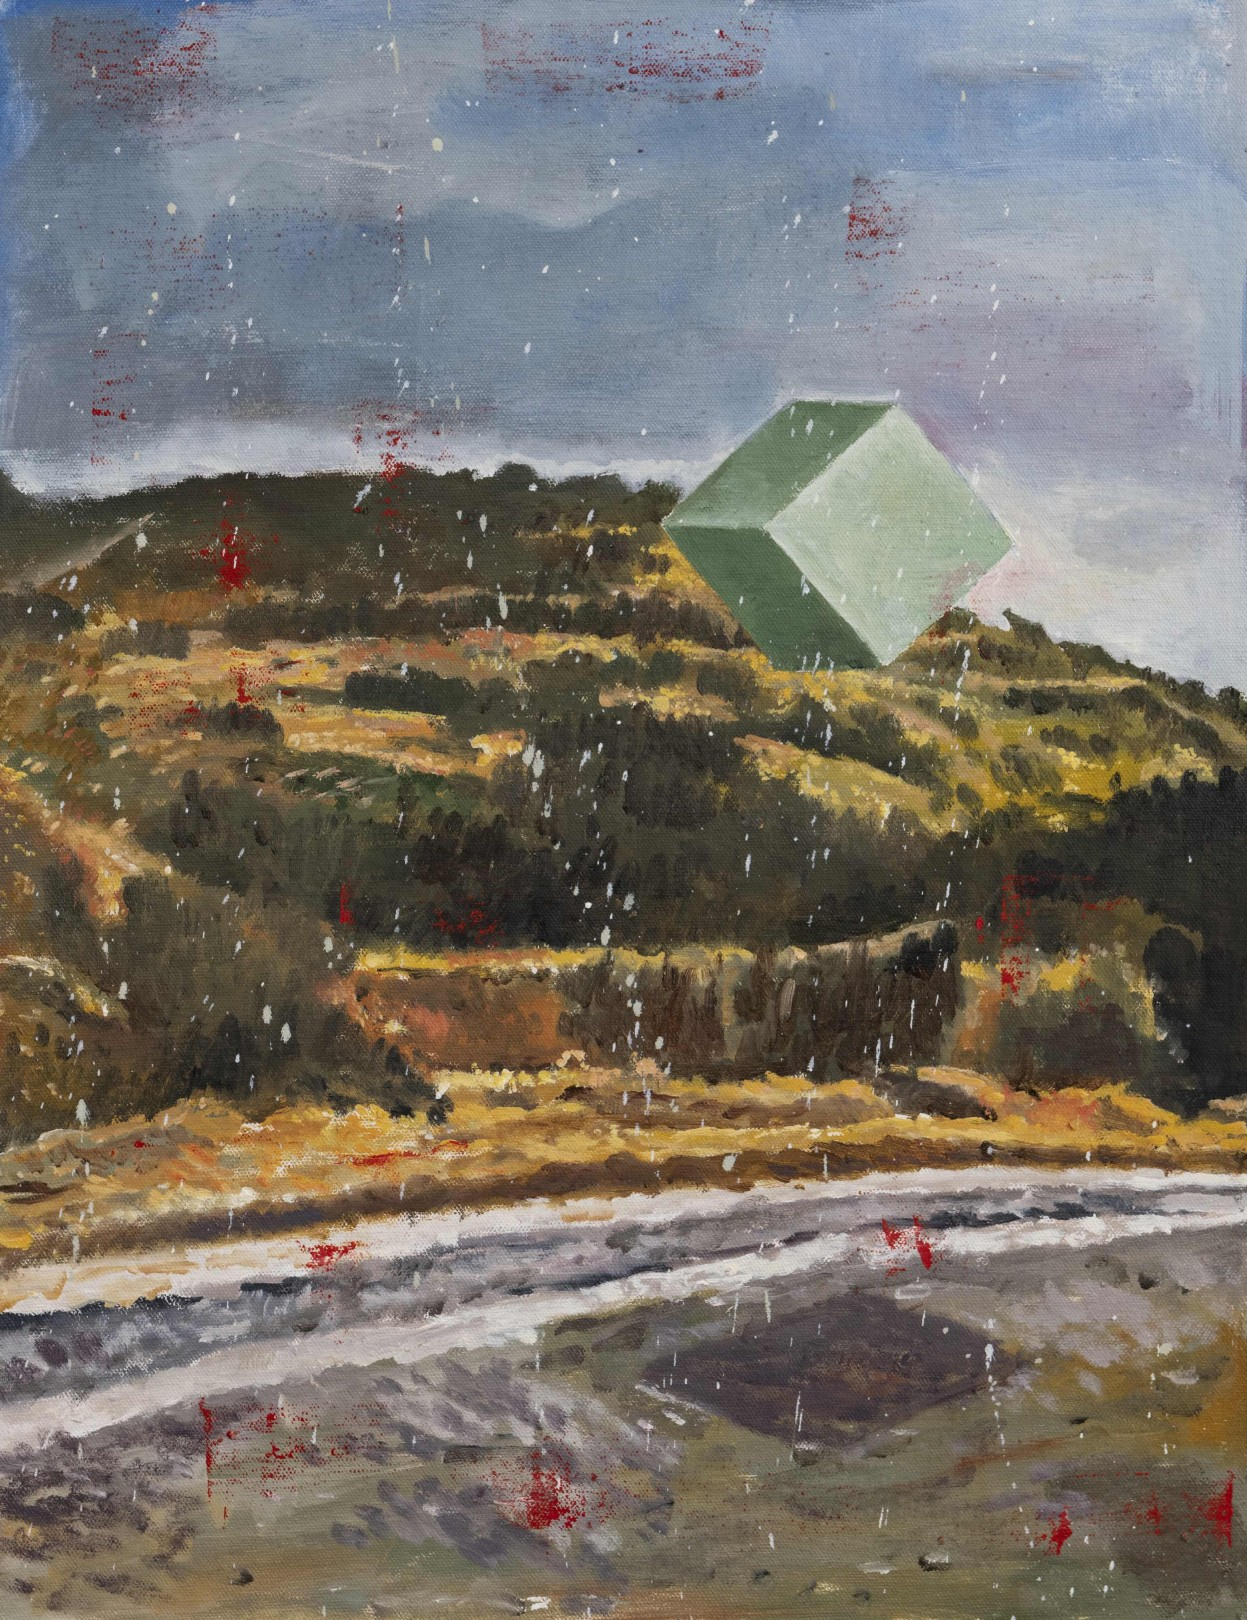 Nicky Nodjoumi Over the Hill Now, 2020 Oil on canvas 51 x 41 cm. / 20 x 16 in.